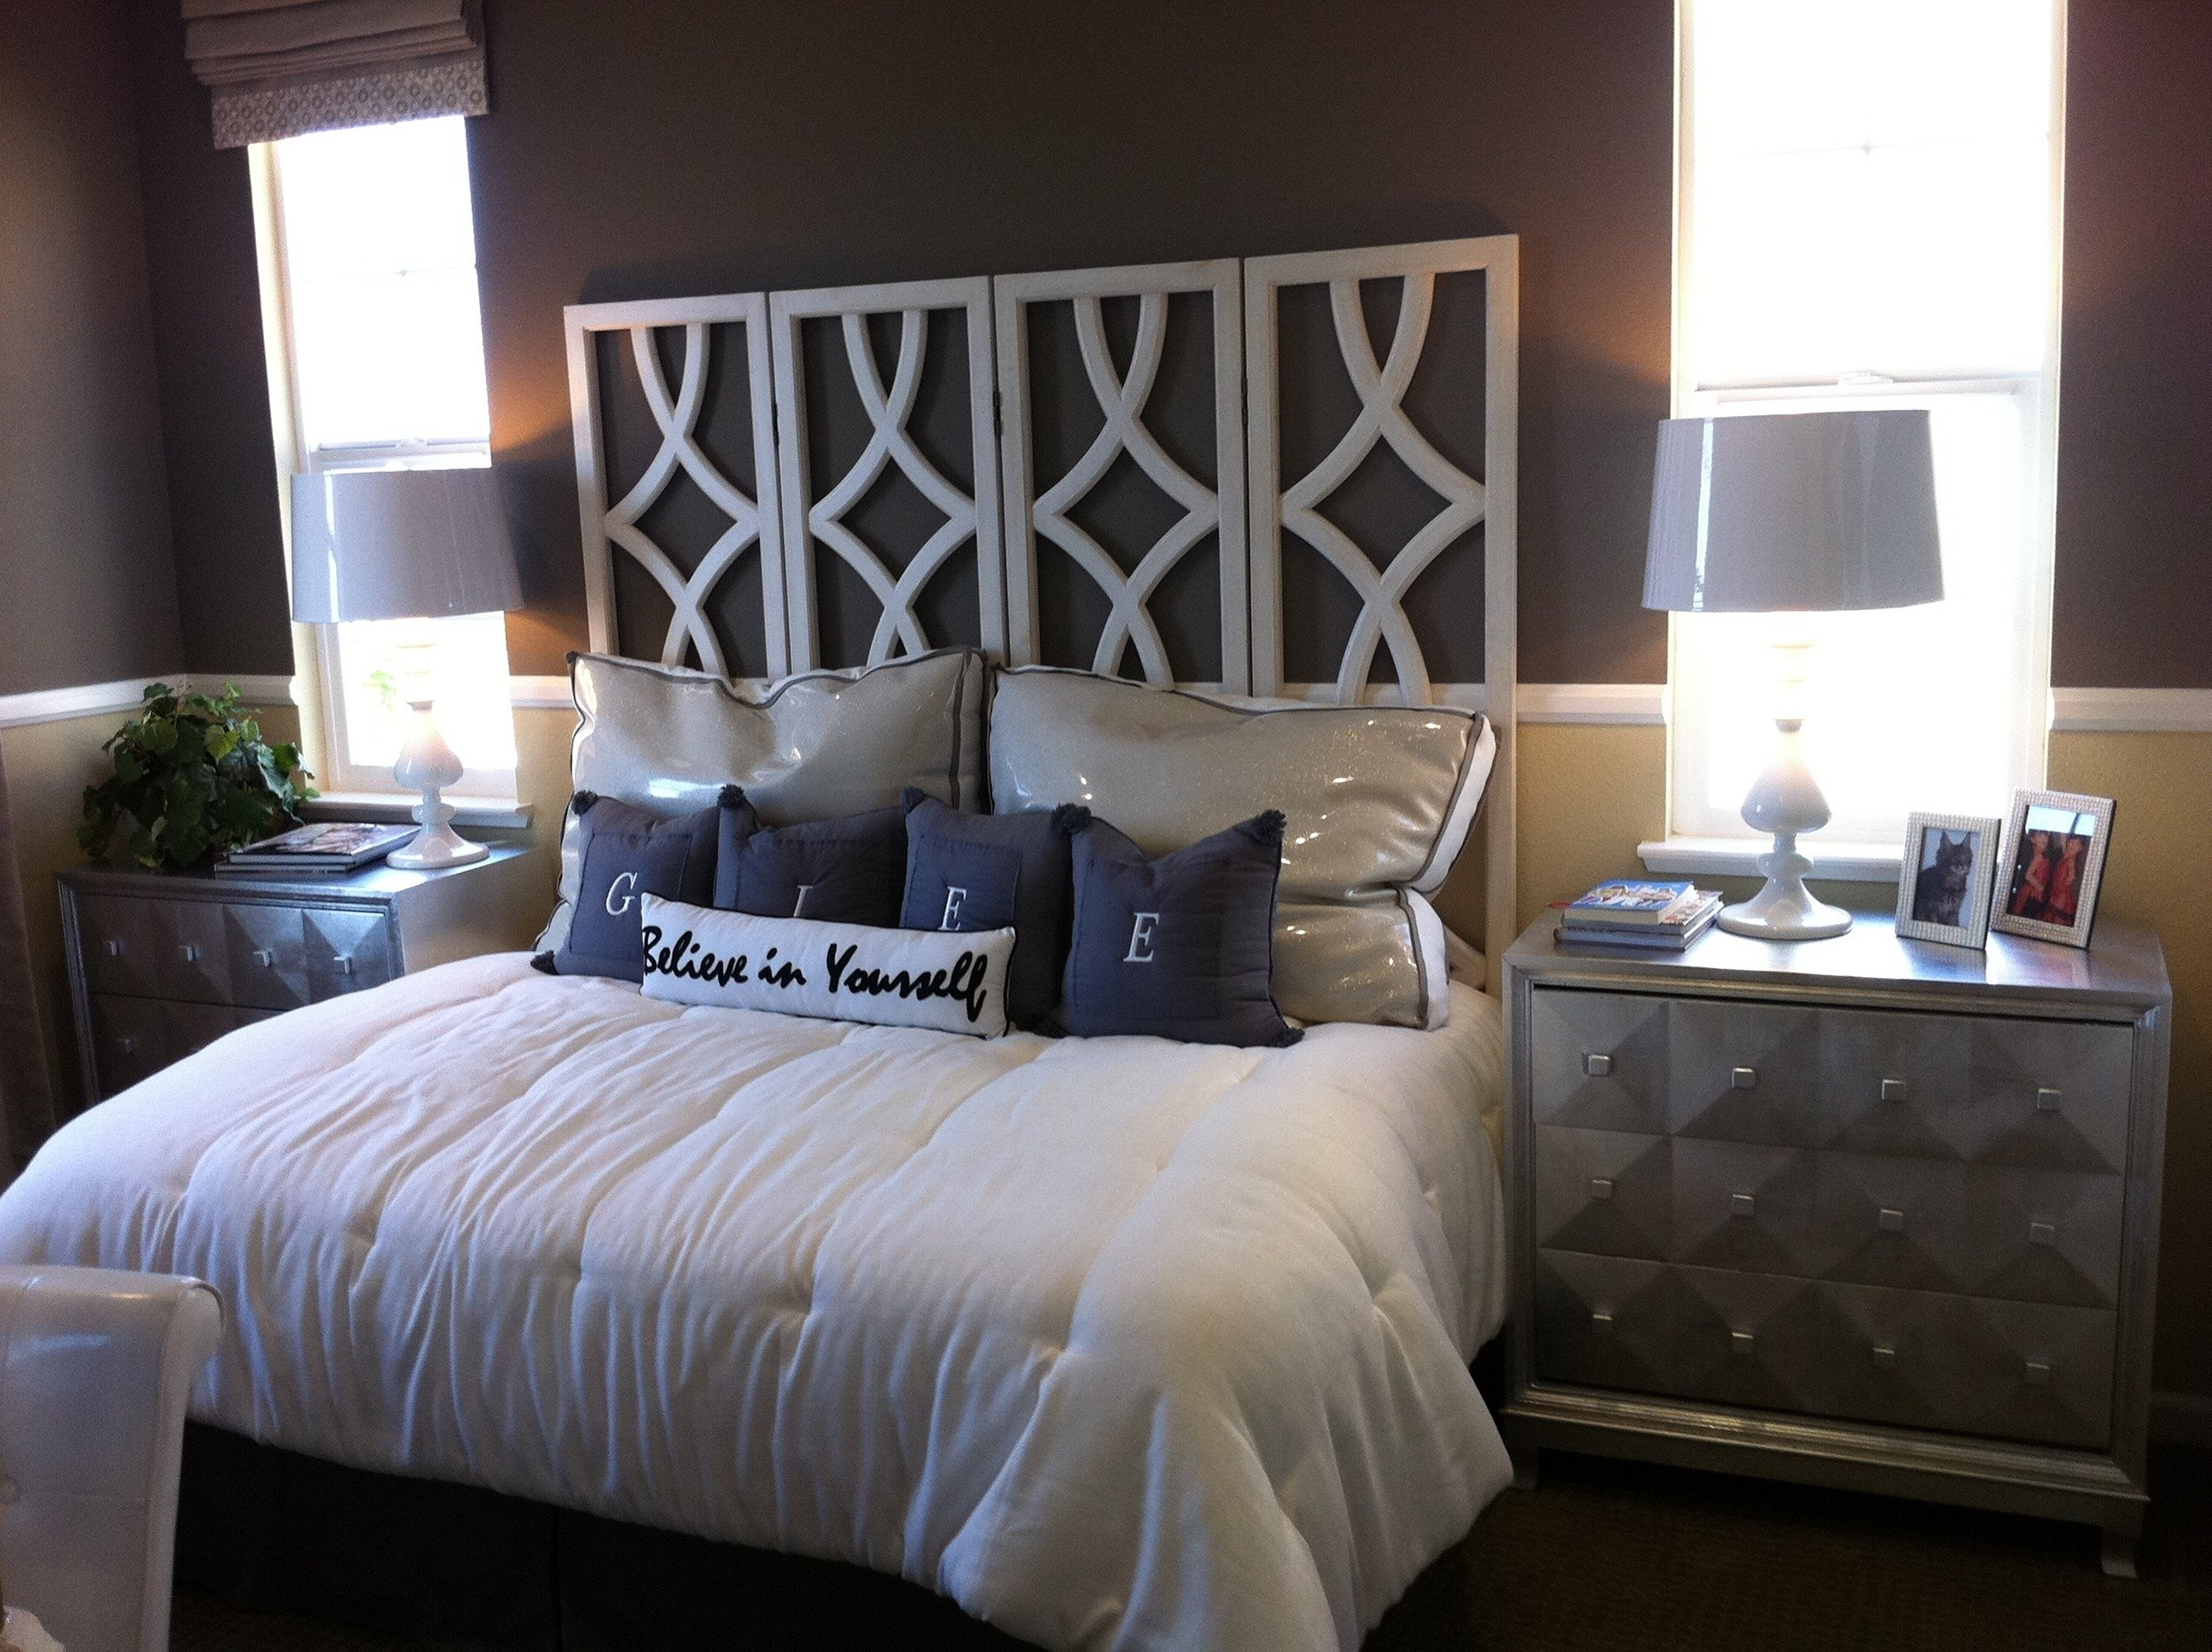 10 Fantastic Diy Headboard Ideas For Queen Beds diy headboard ideas to save more money homestylediary com for full 2020